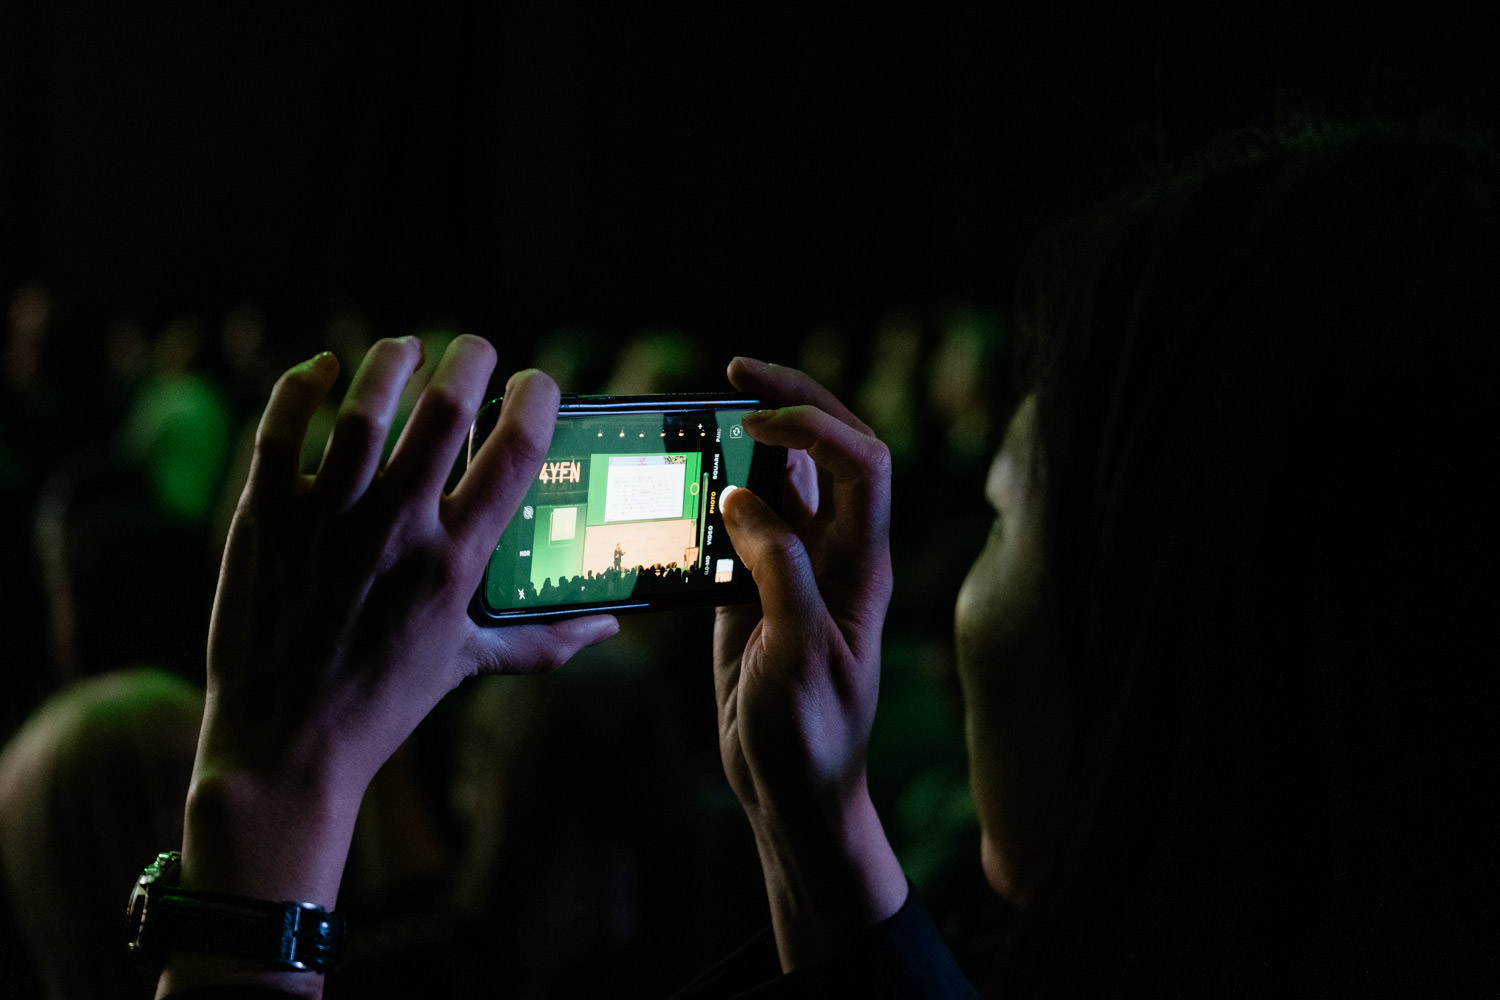 A close up photograph of an audience member taking a photo of the stage, during the 4YFN event in Barcelona, Spain